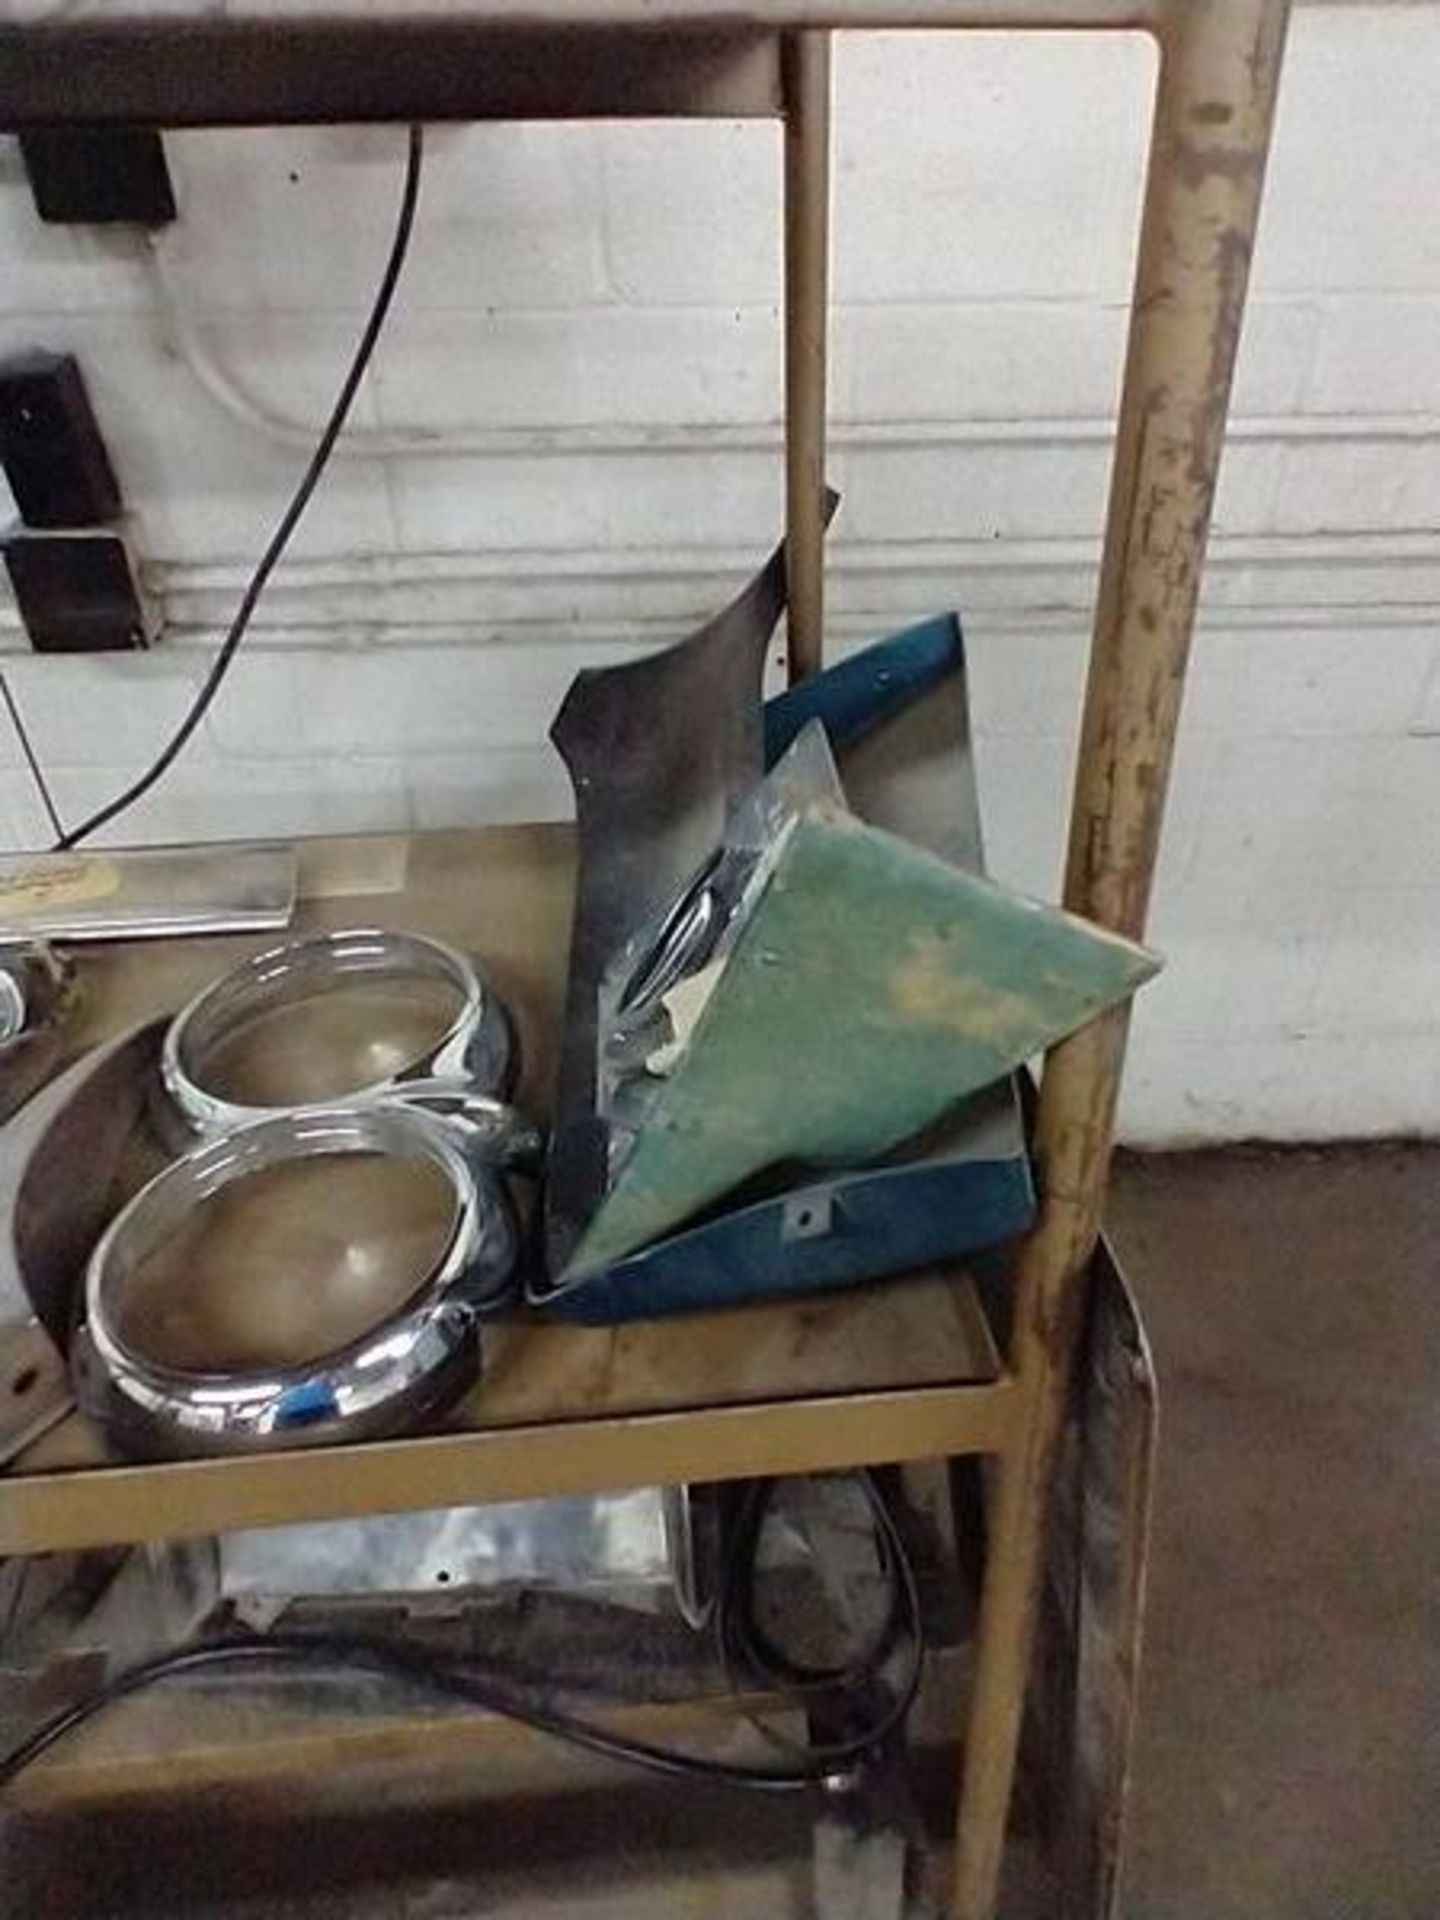 LOT OF VINTAGE CAR PARTS ON CART - Image 11 of 12